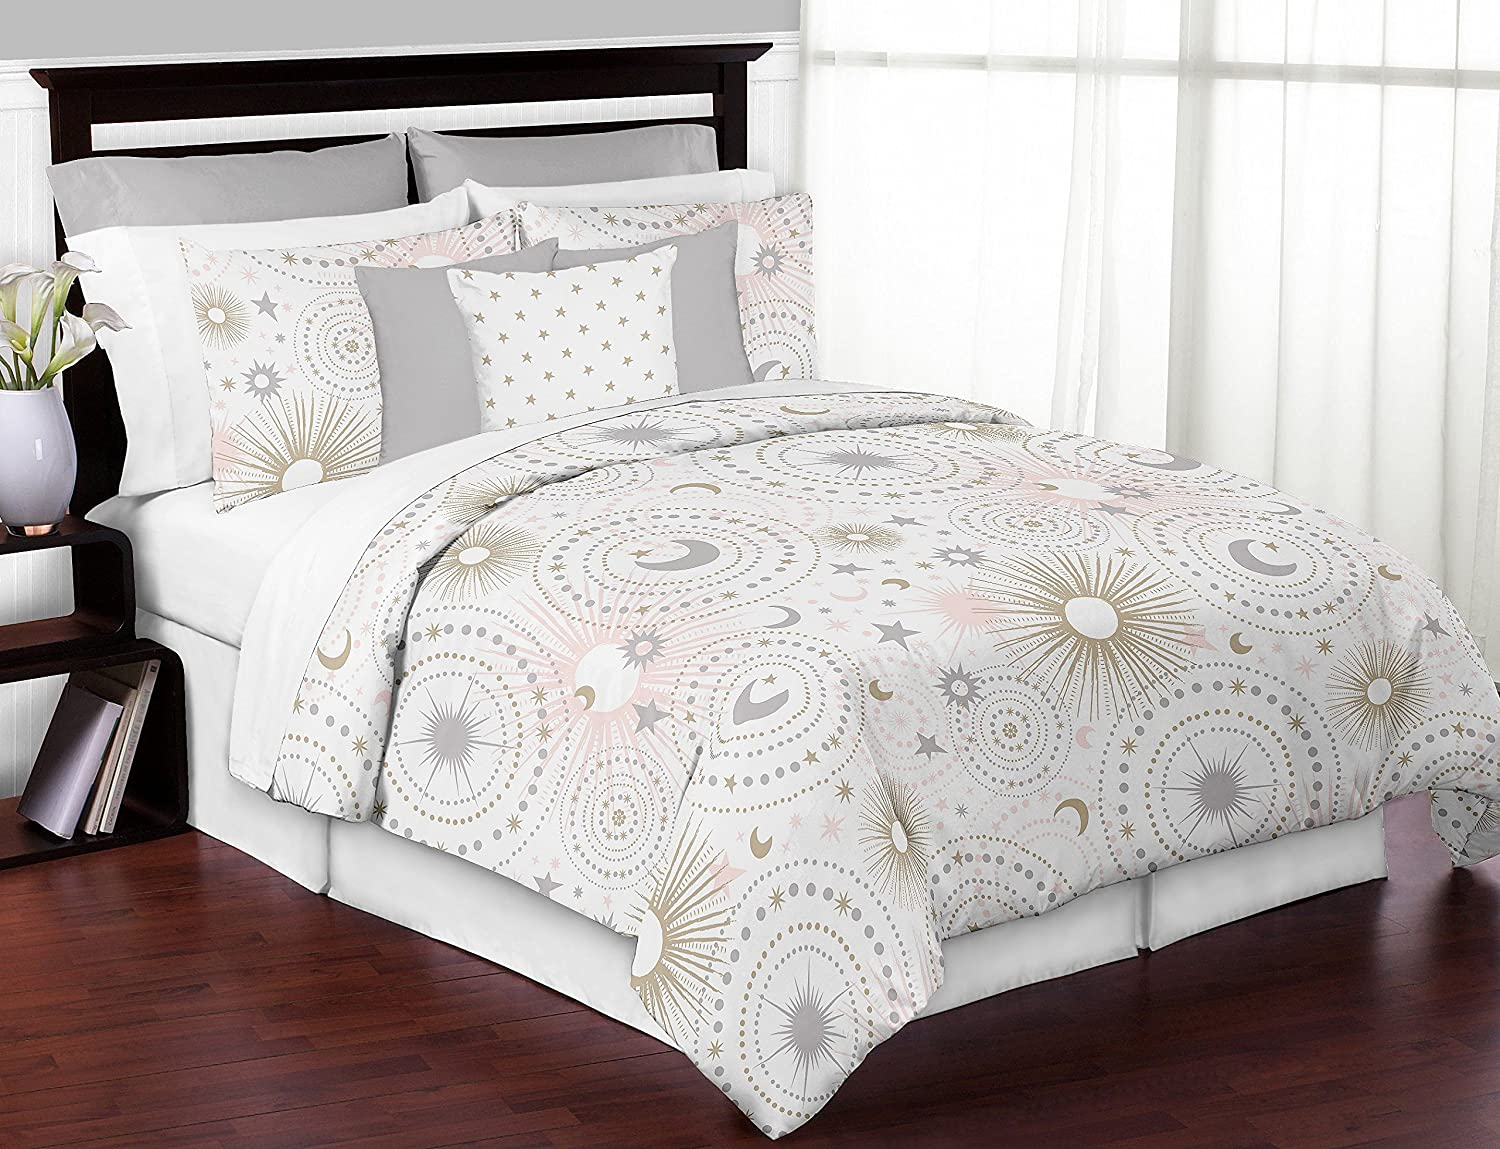 Amazon Com Sweet Jojo Designs Blush Pink Gold Grey And White Star And Moon Celestial Girl Full Queen Kid Childrens Bedding Comforter Set 3 Pieces Home Kitchen